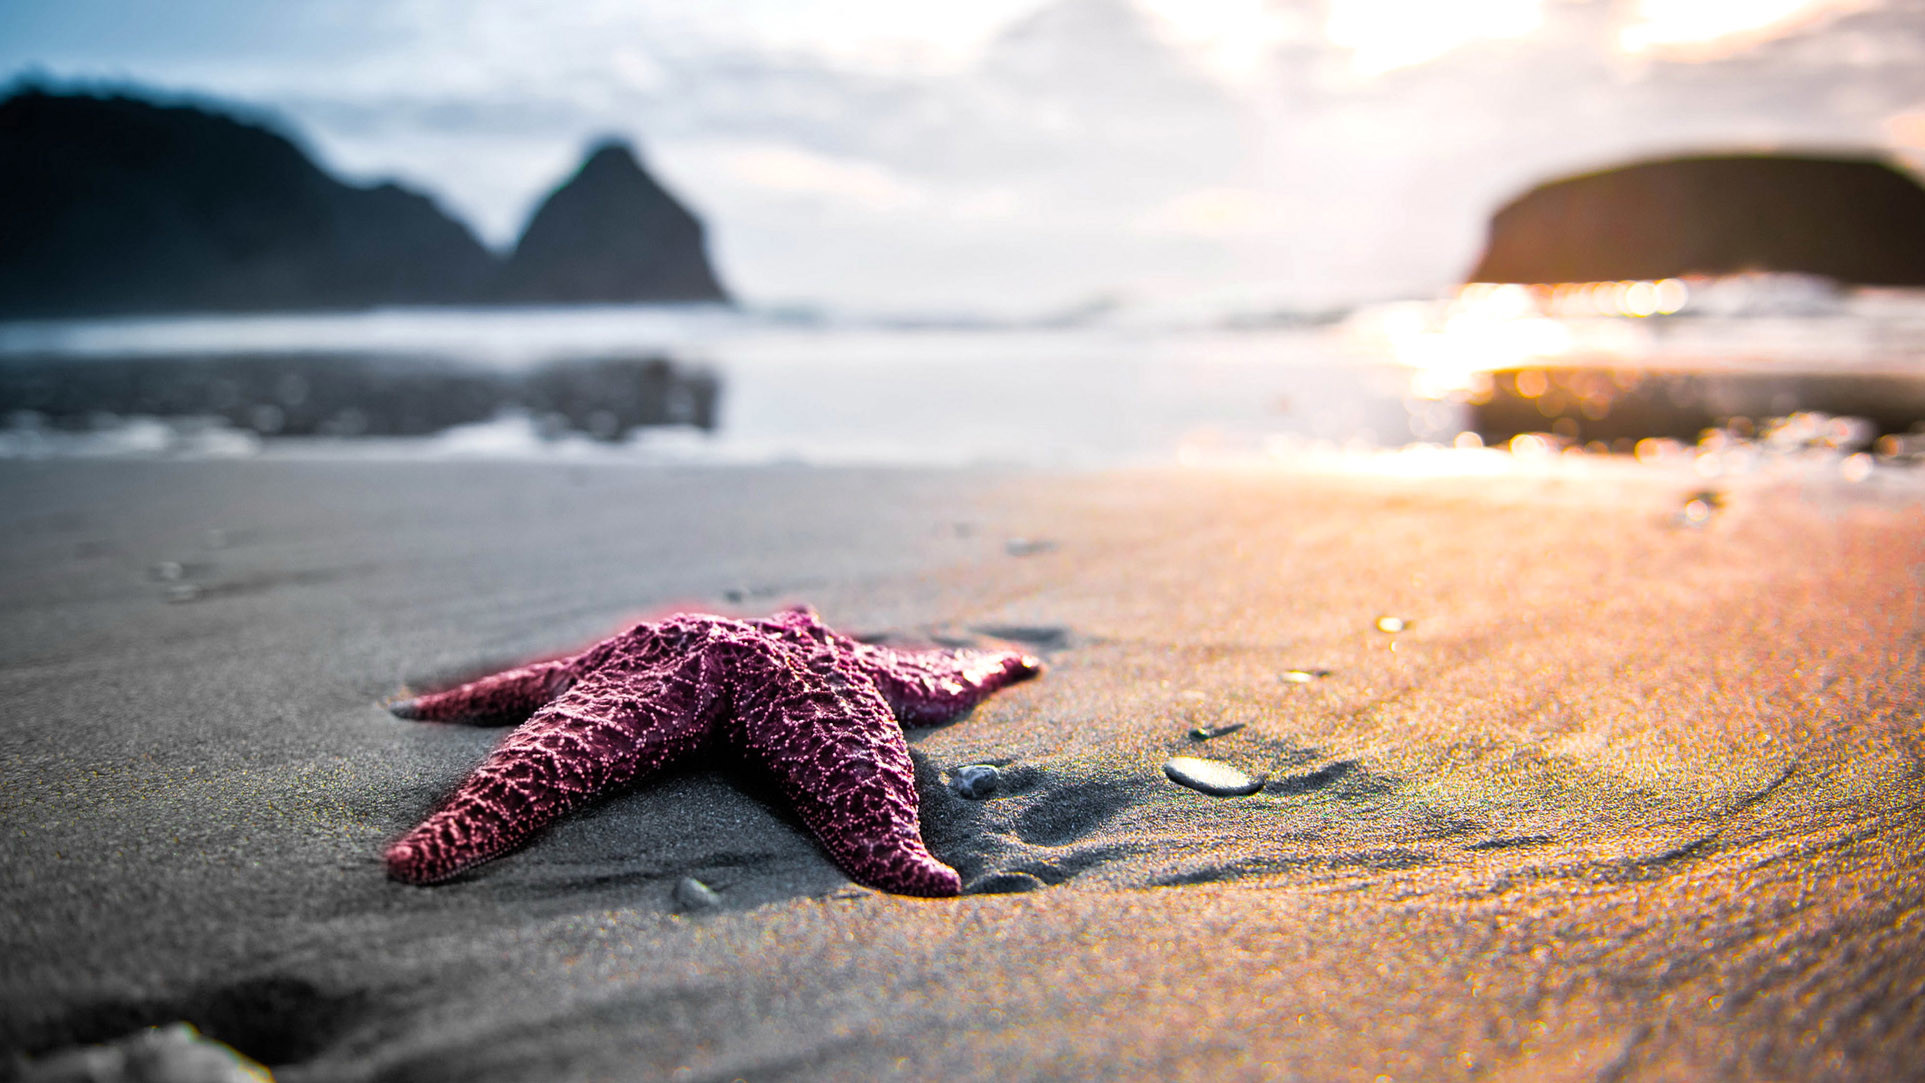 Starfish Backgrounds HD Wallpapers Download Free Images Wallpaper [1000image.com]